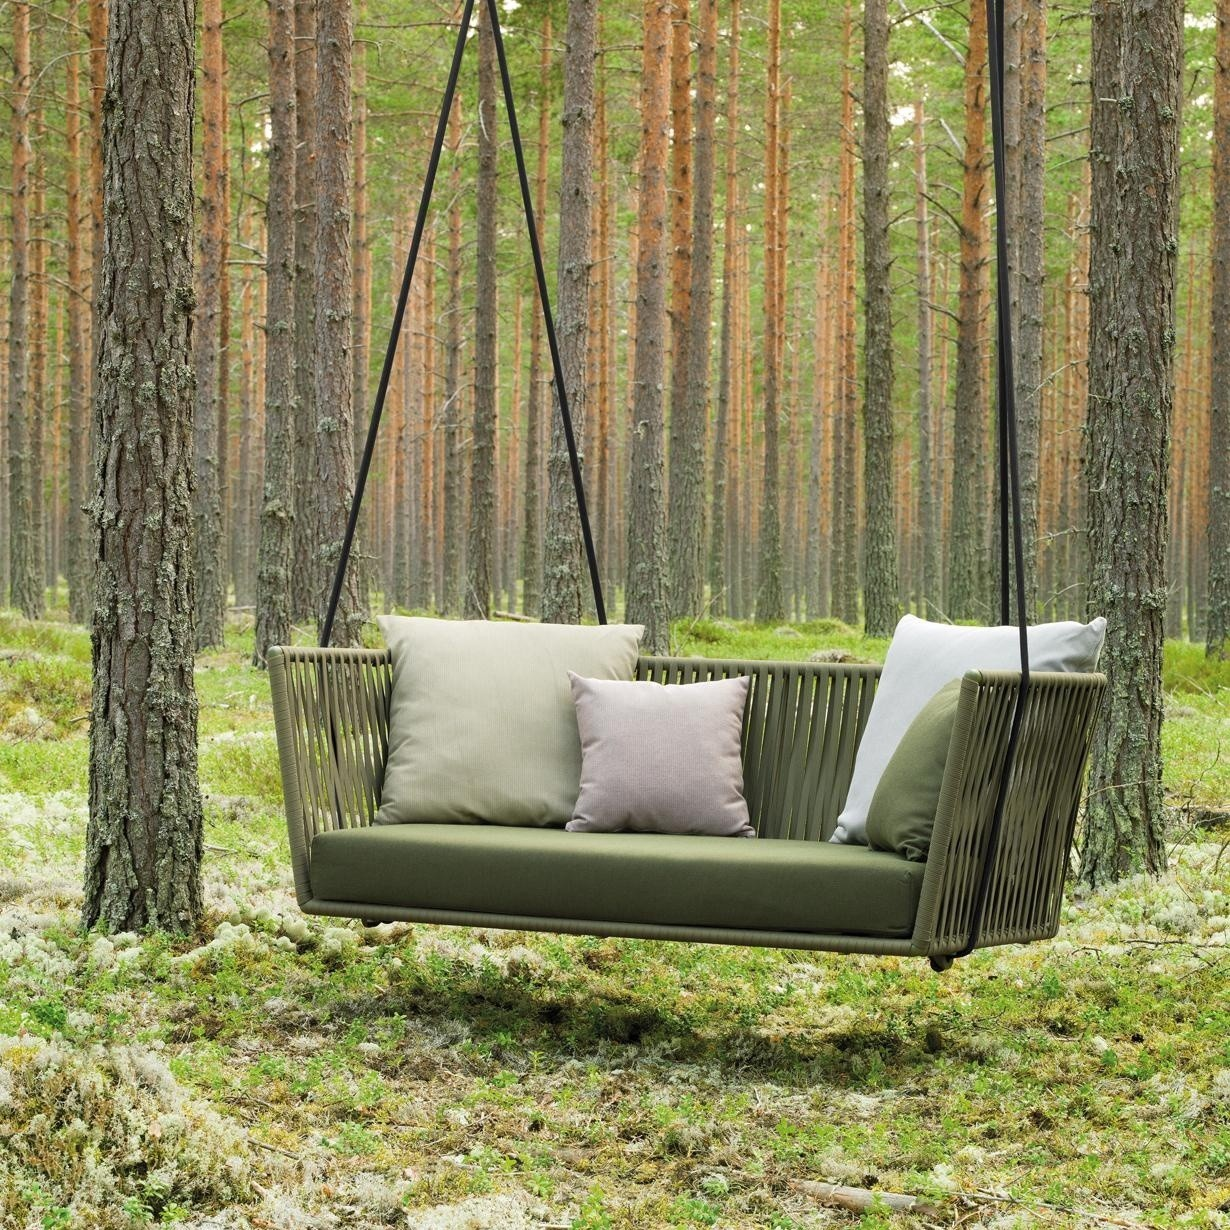 Garten Sofa Bitta Swing Gartensofa Hollywoodschaukel